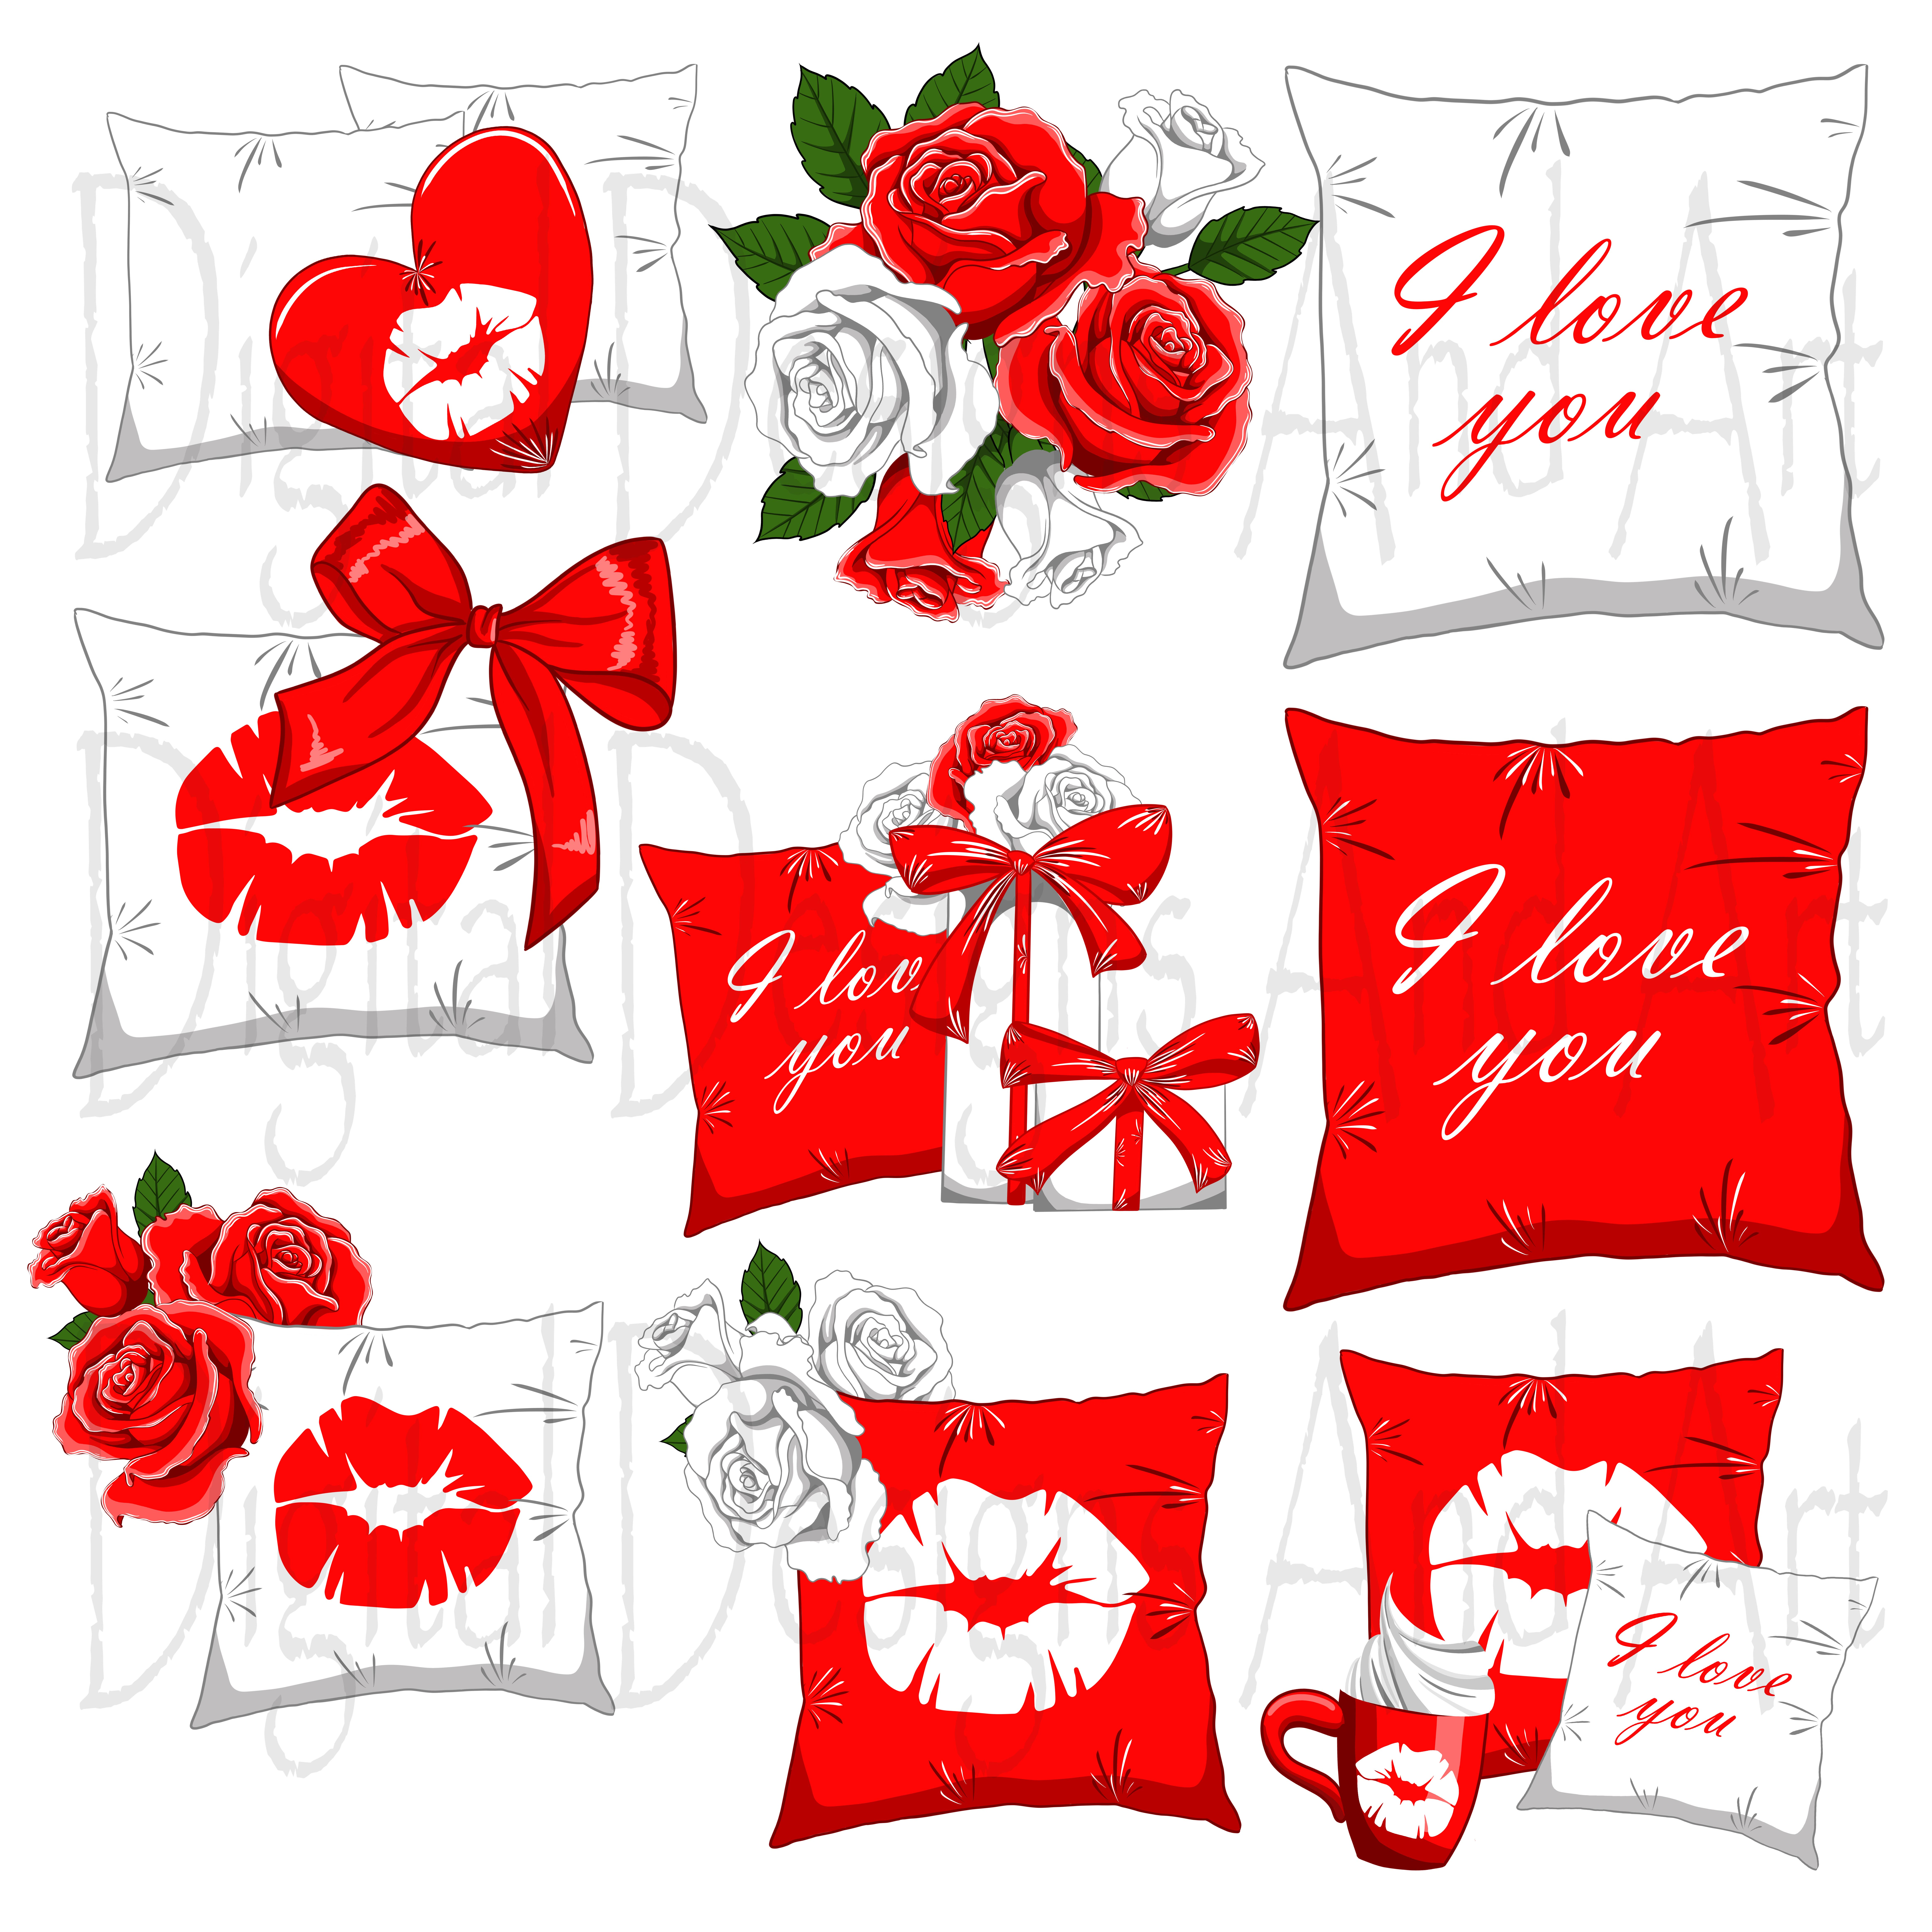 Kiss me clipart example image 4